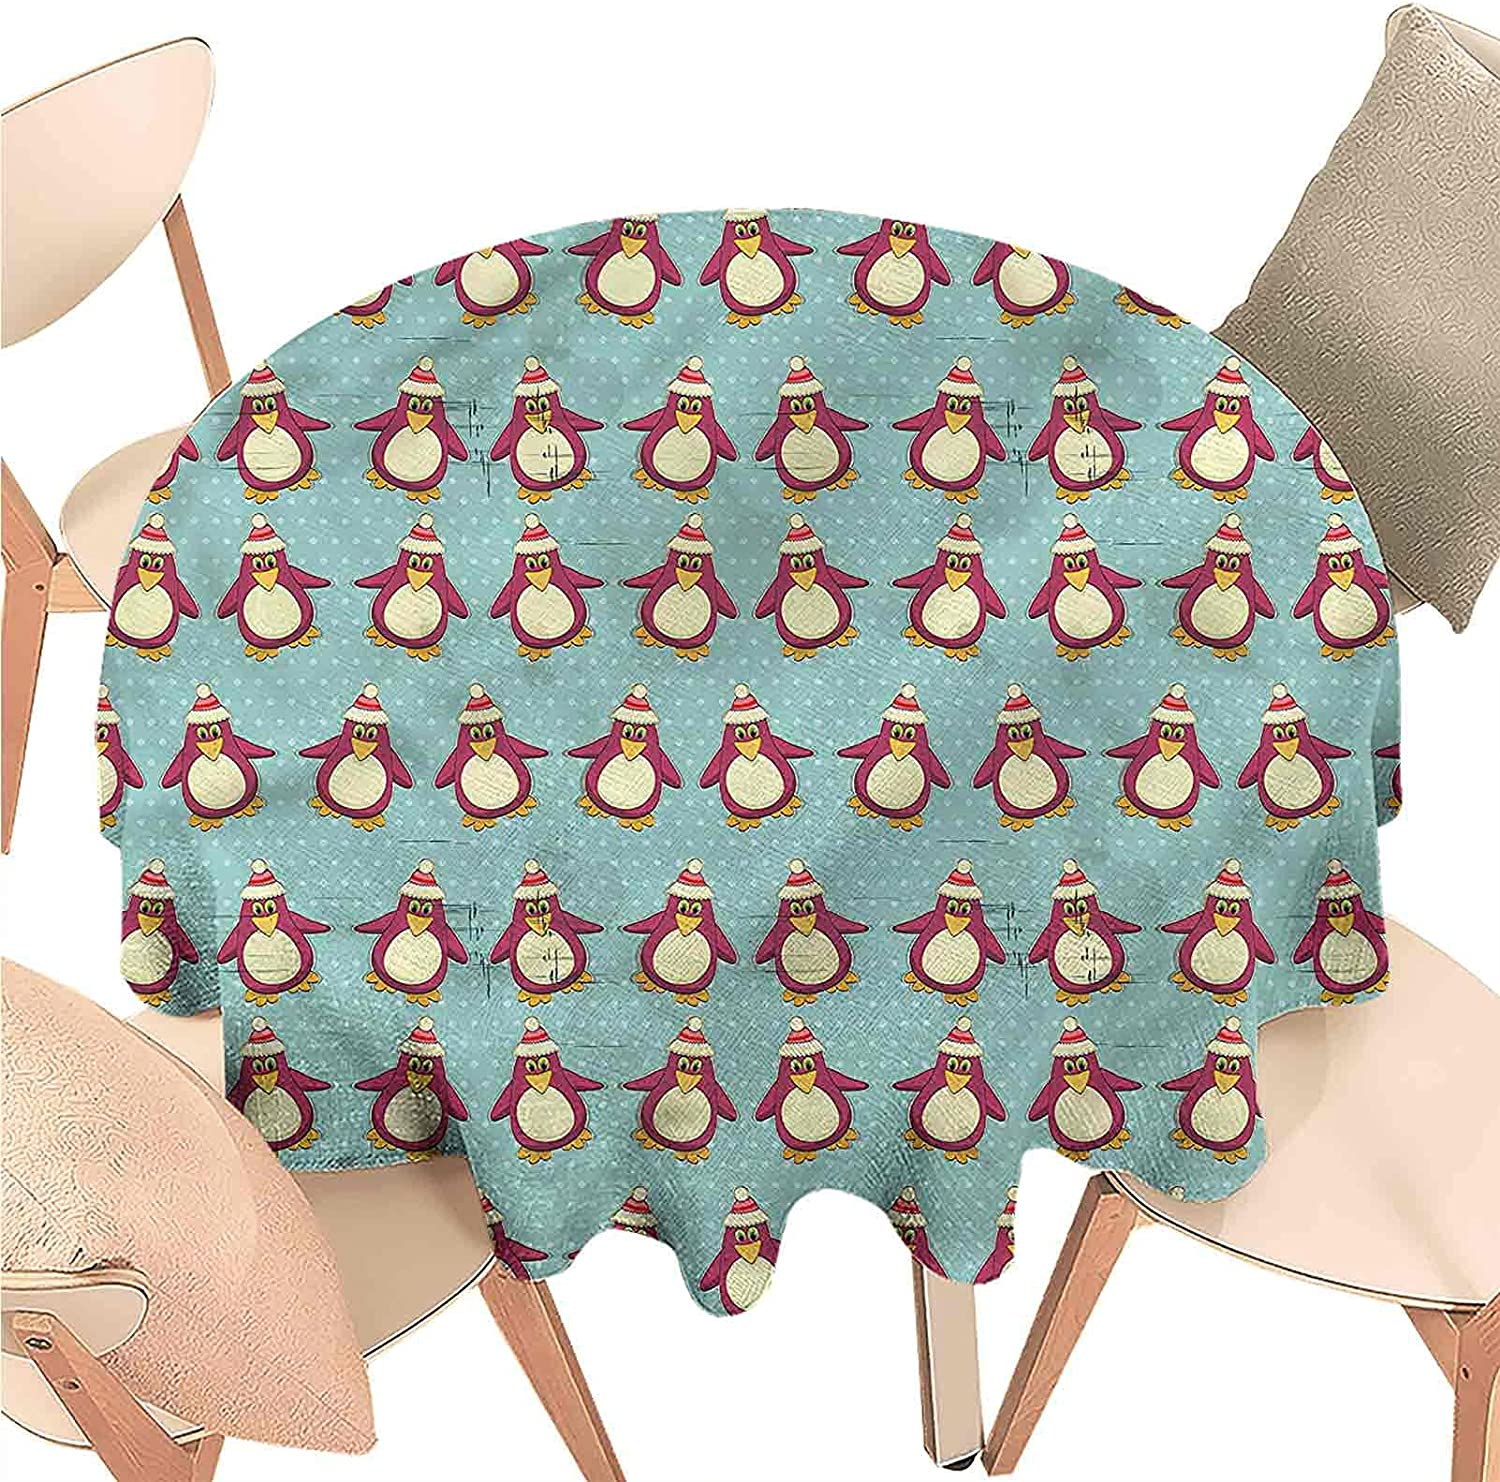 Linhomedecor Round Tablecloth Christmas,Funny Arctic Penguins,Indoor Outdoor Spillproof Tablecloth Table Cover for Spring Summer Patio Garden Tabletop Decor Diameter 60 inch